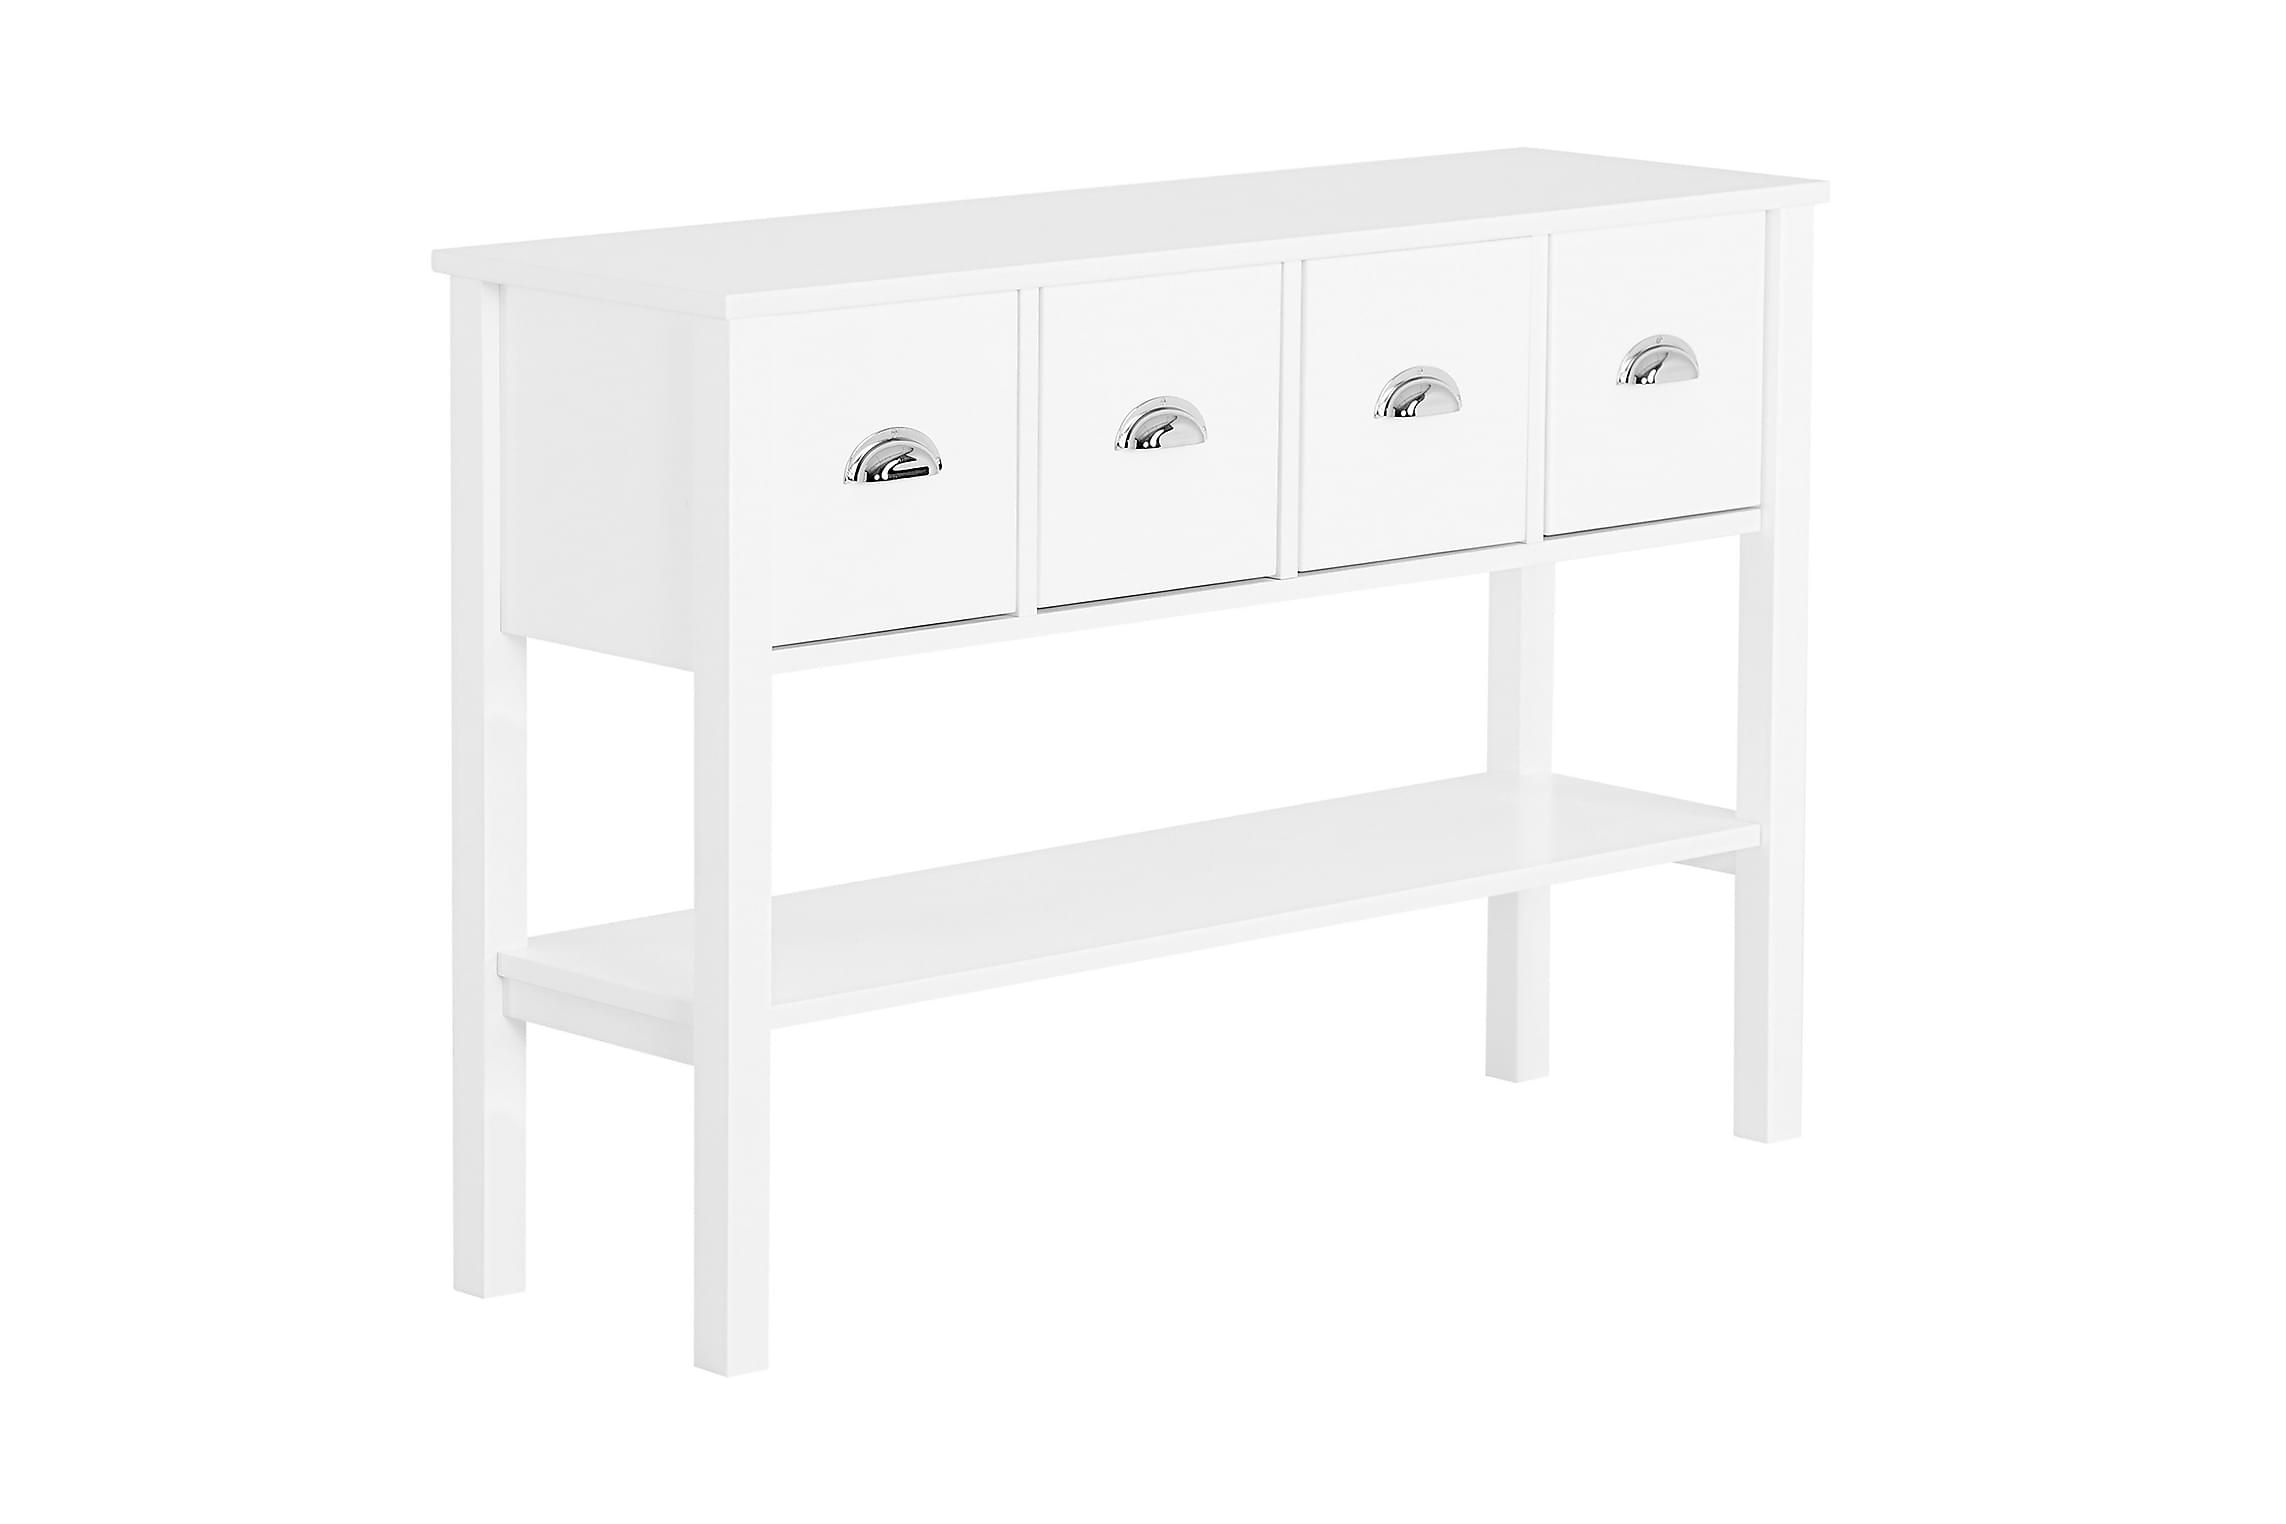 Sideboard - Köp Sideboards billigt online - Furniturebox